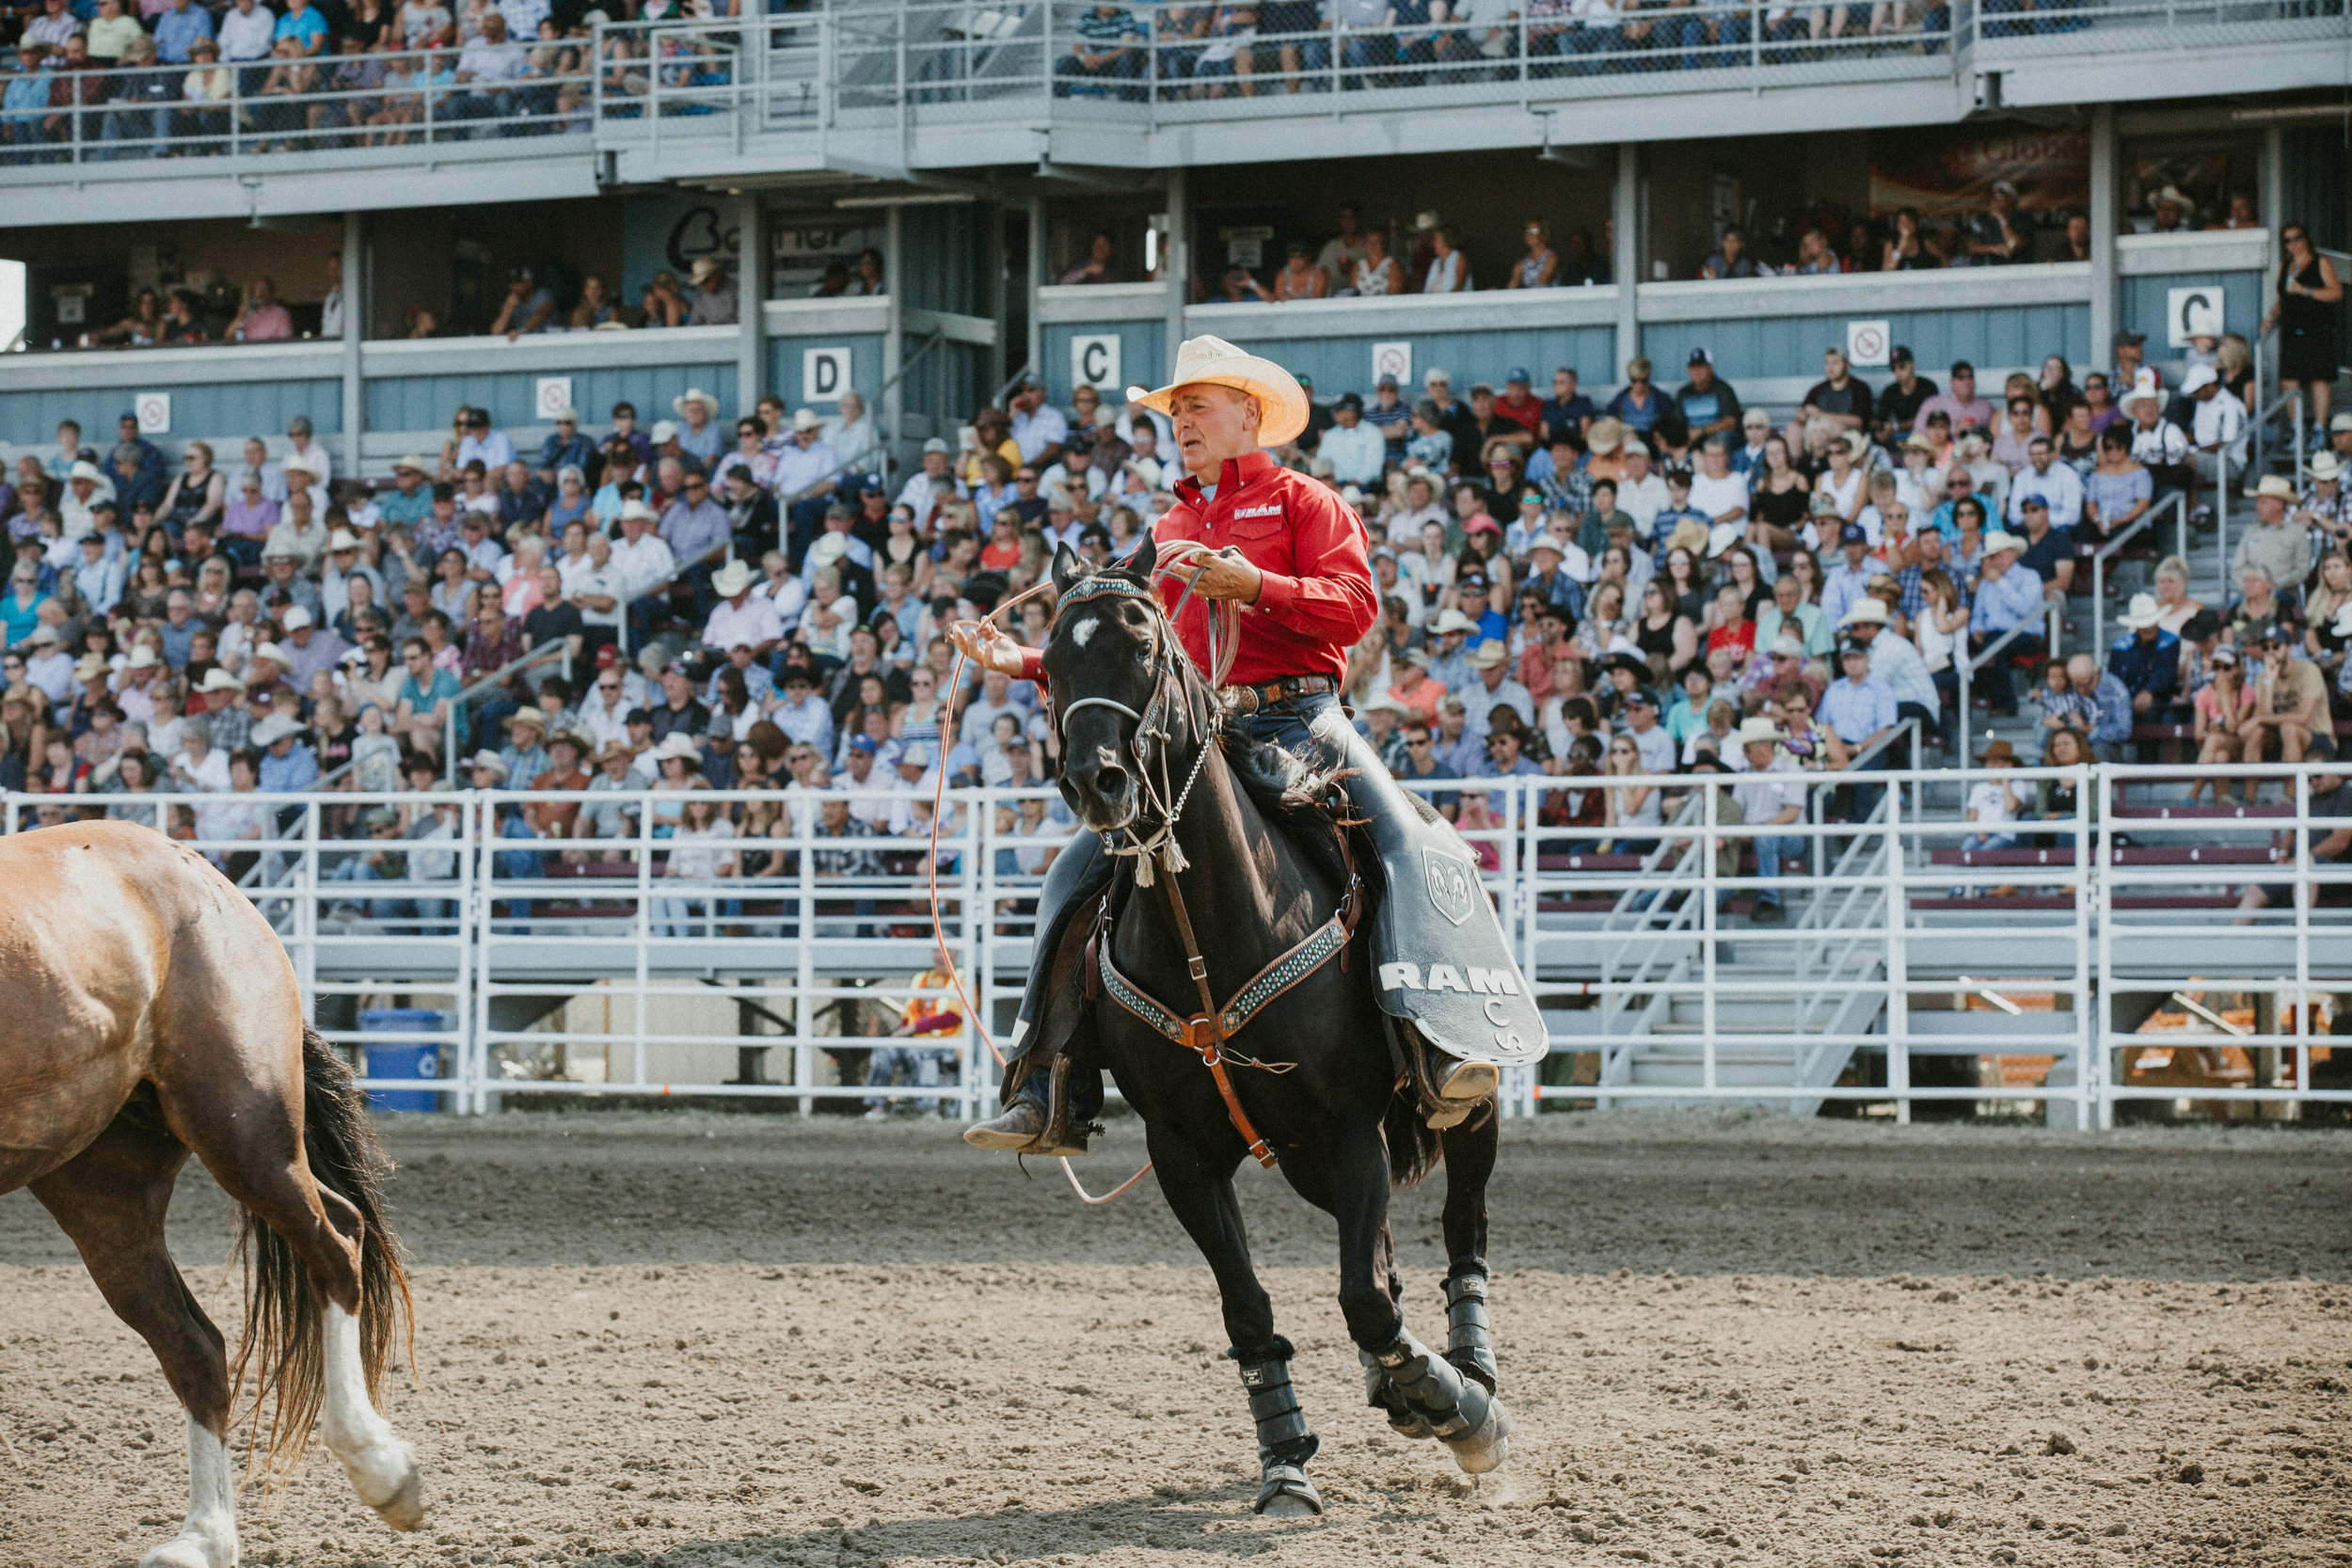 Calgary-kristina-cajipe-photographer-commercial-professional-best-corporate-reasonable-photo-pictures-building-travel-stampede-events-(7).jpg